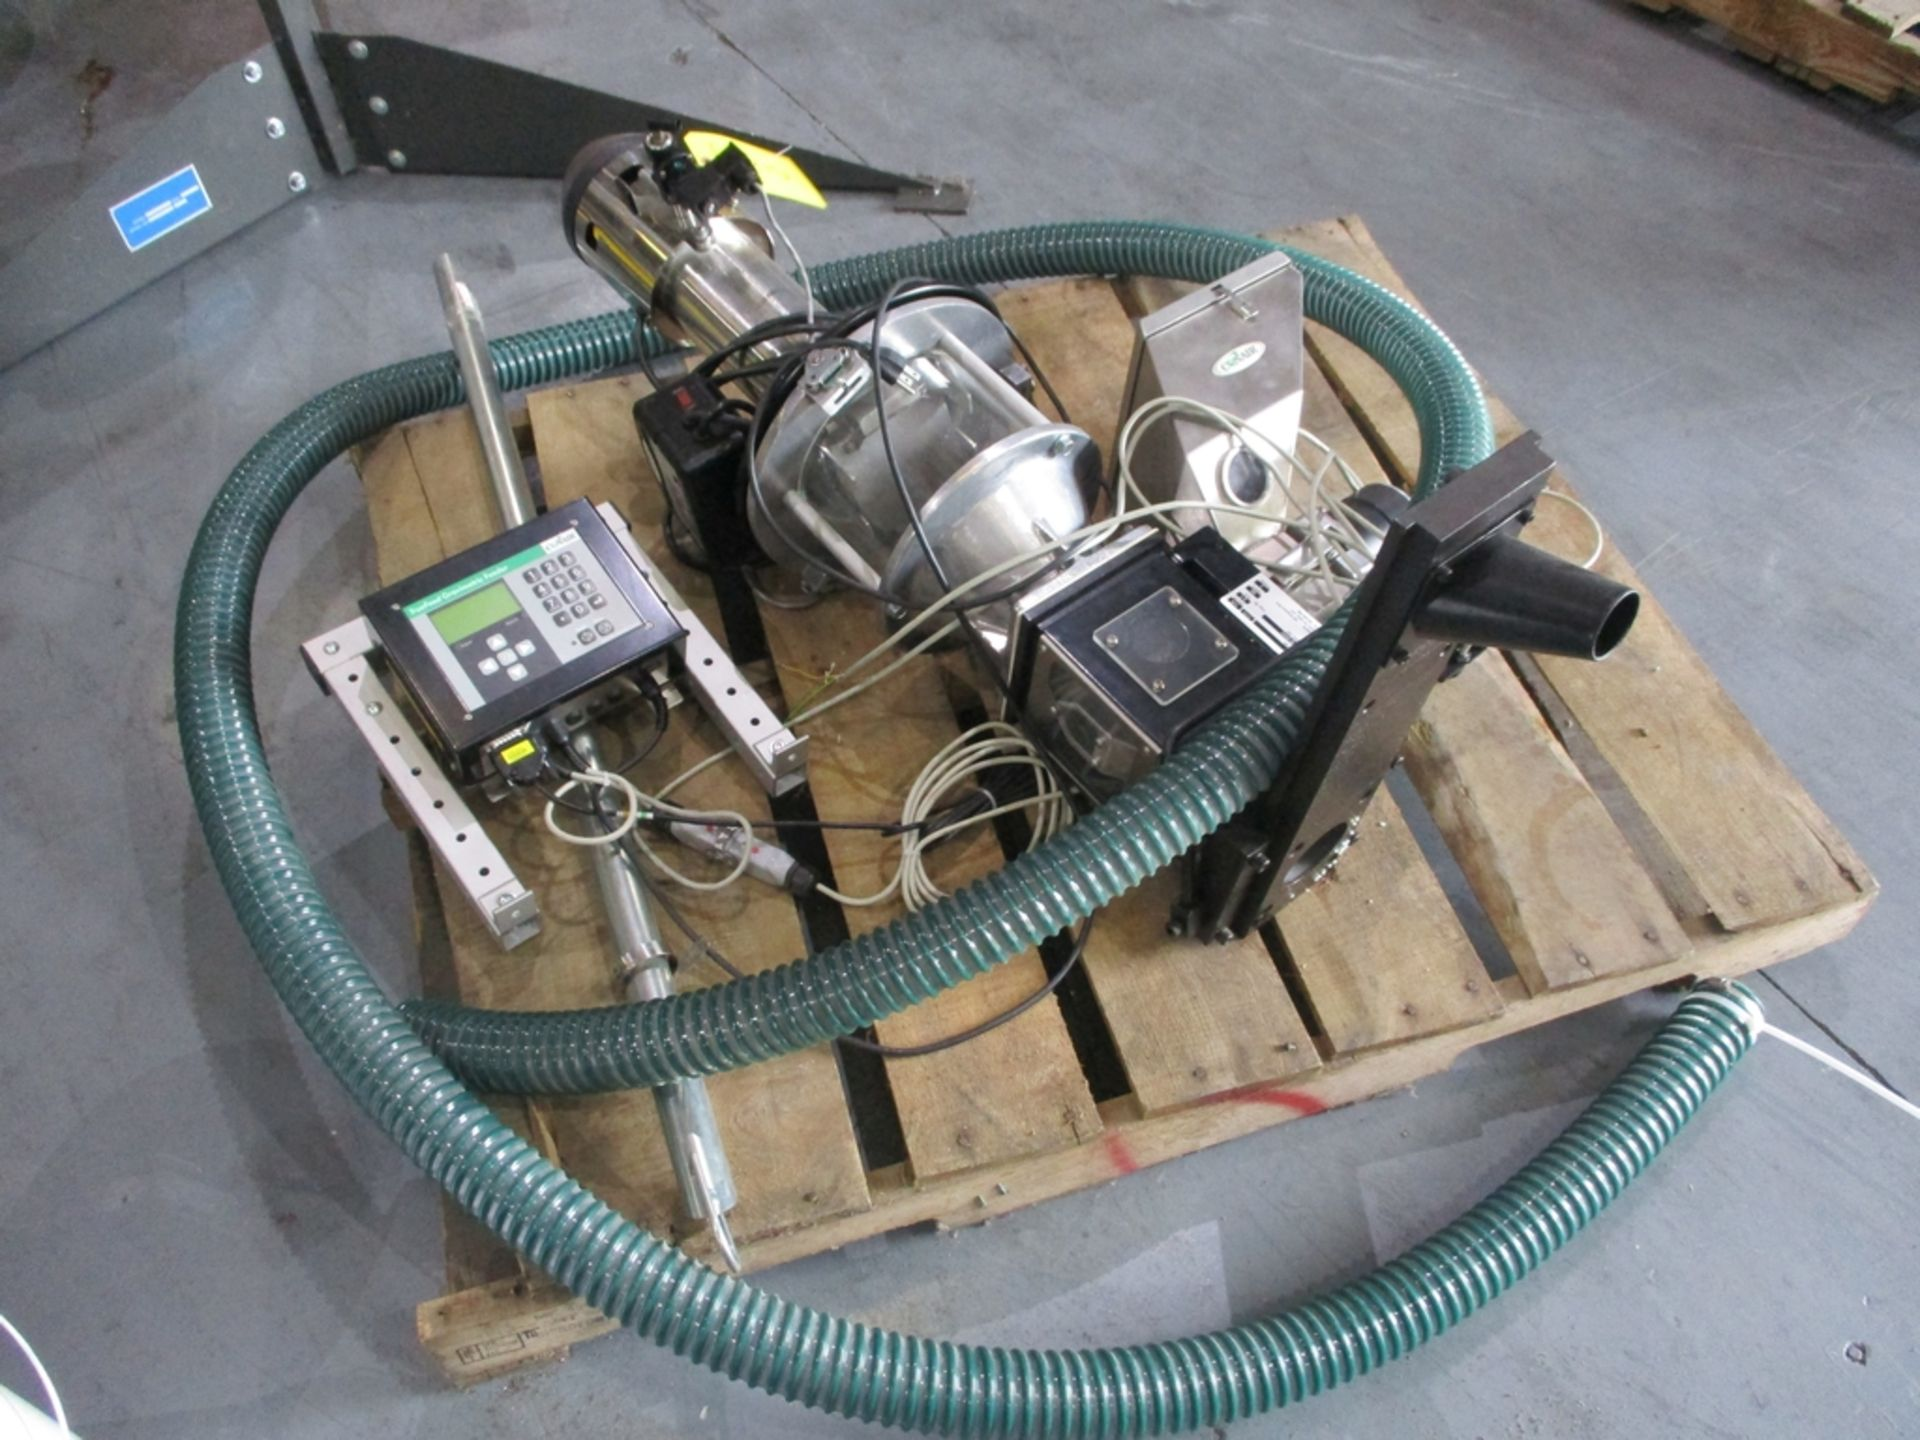 Lot 1018 - Conair Gravimetric Feed Assembly - Includes: TrueFeed Gravimetric Feeder w/ Control, Colormix, TLM